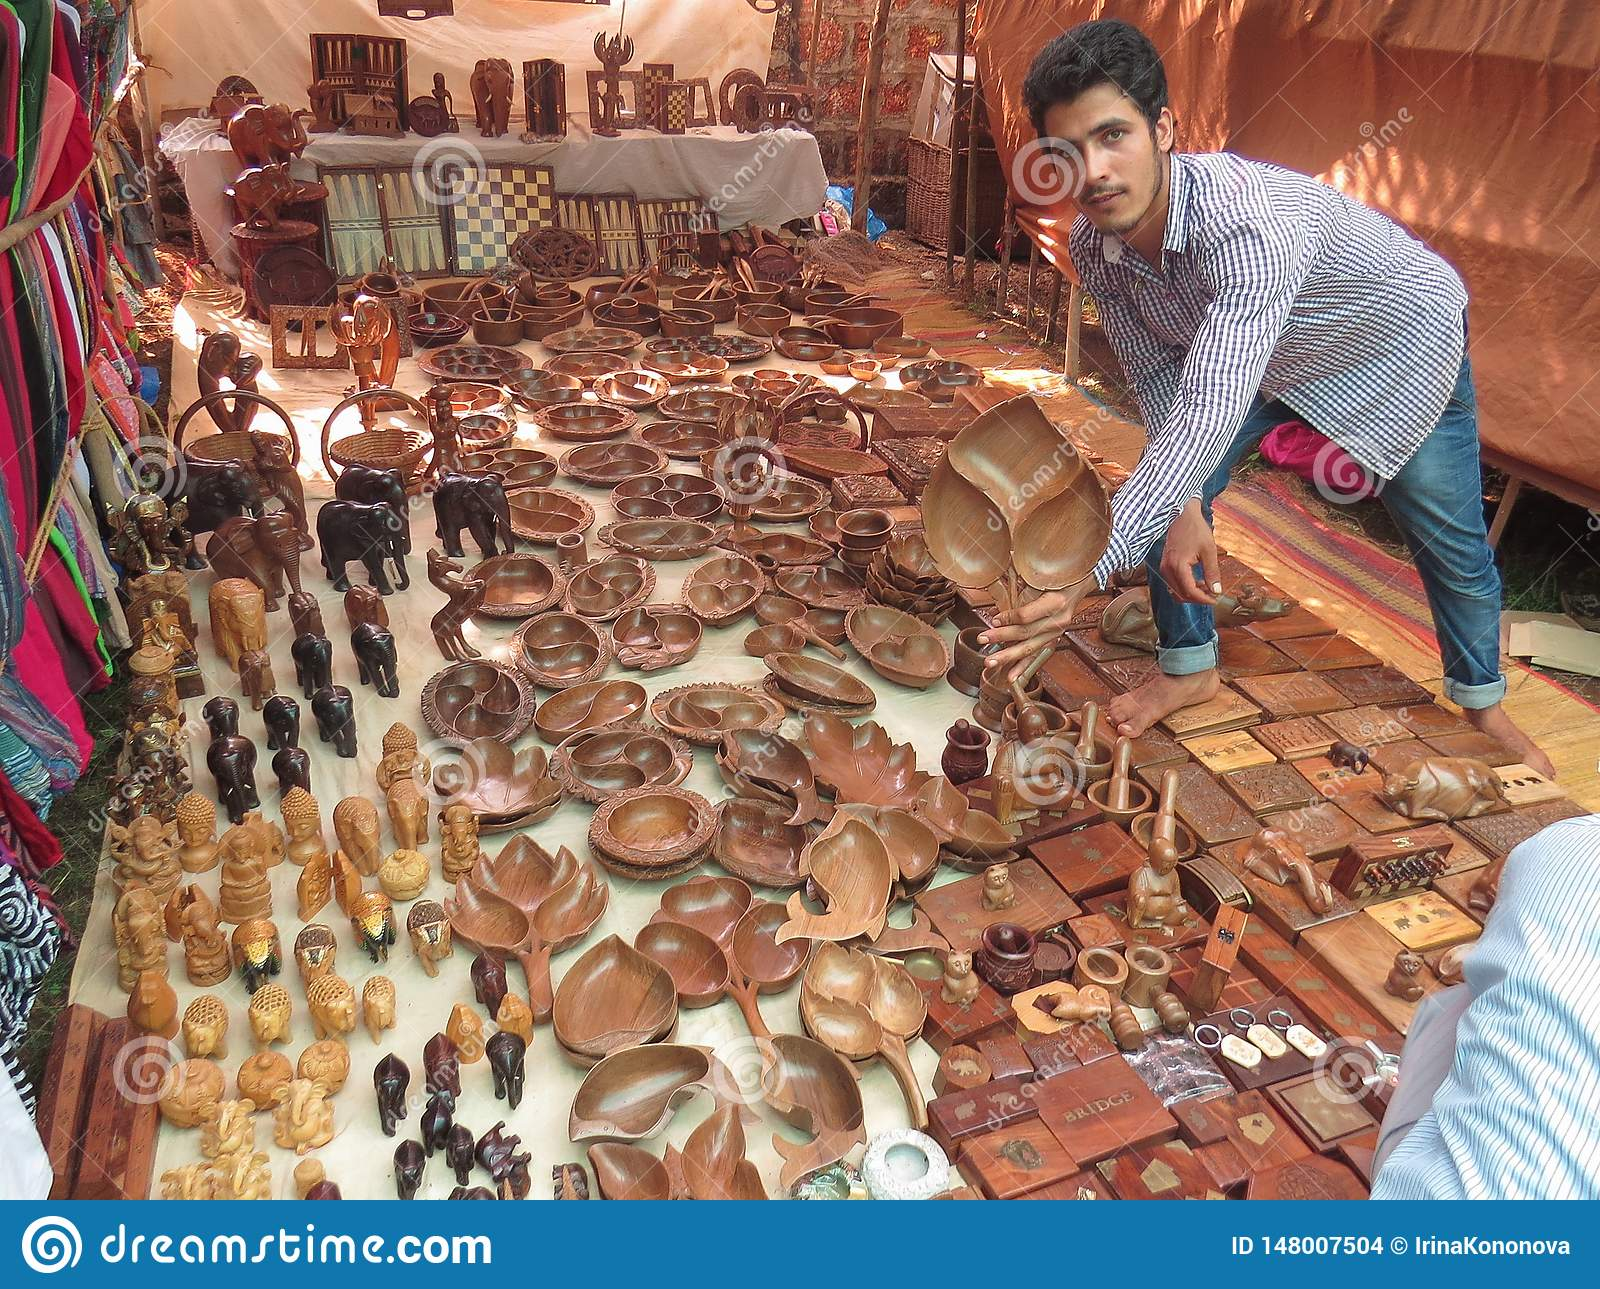 Morjim, India, November 23, 2013. In the market, an Indian man shows and offers to buy a wooden plate